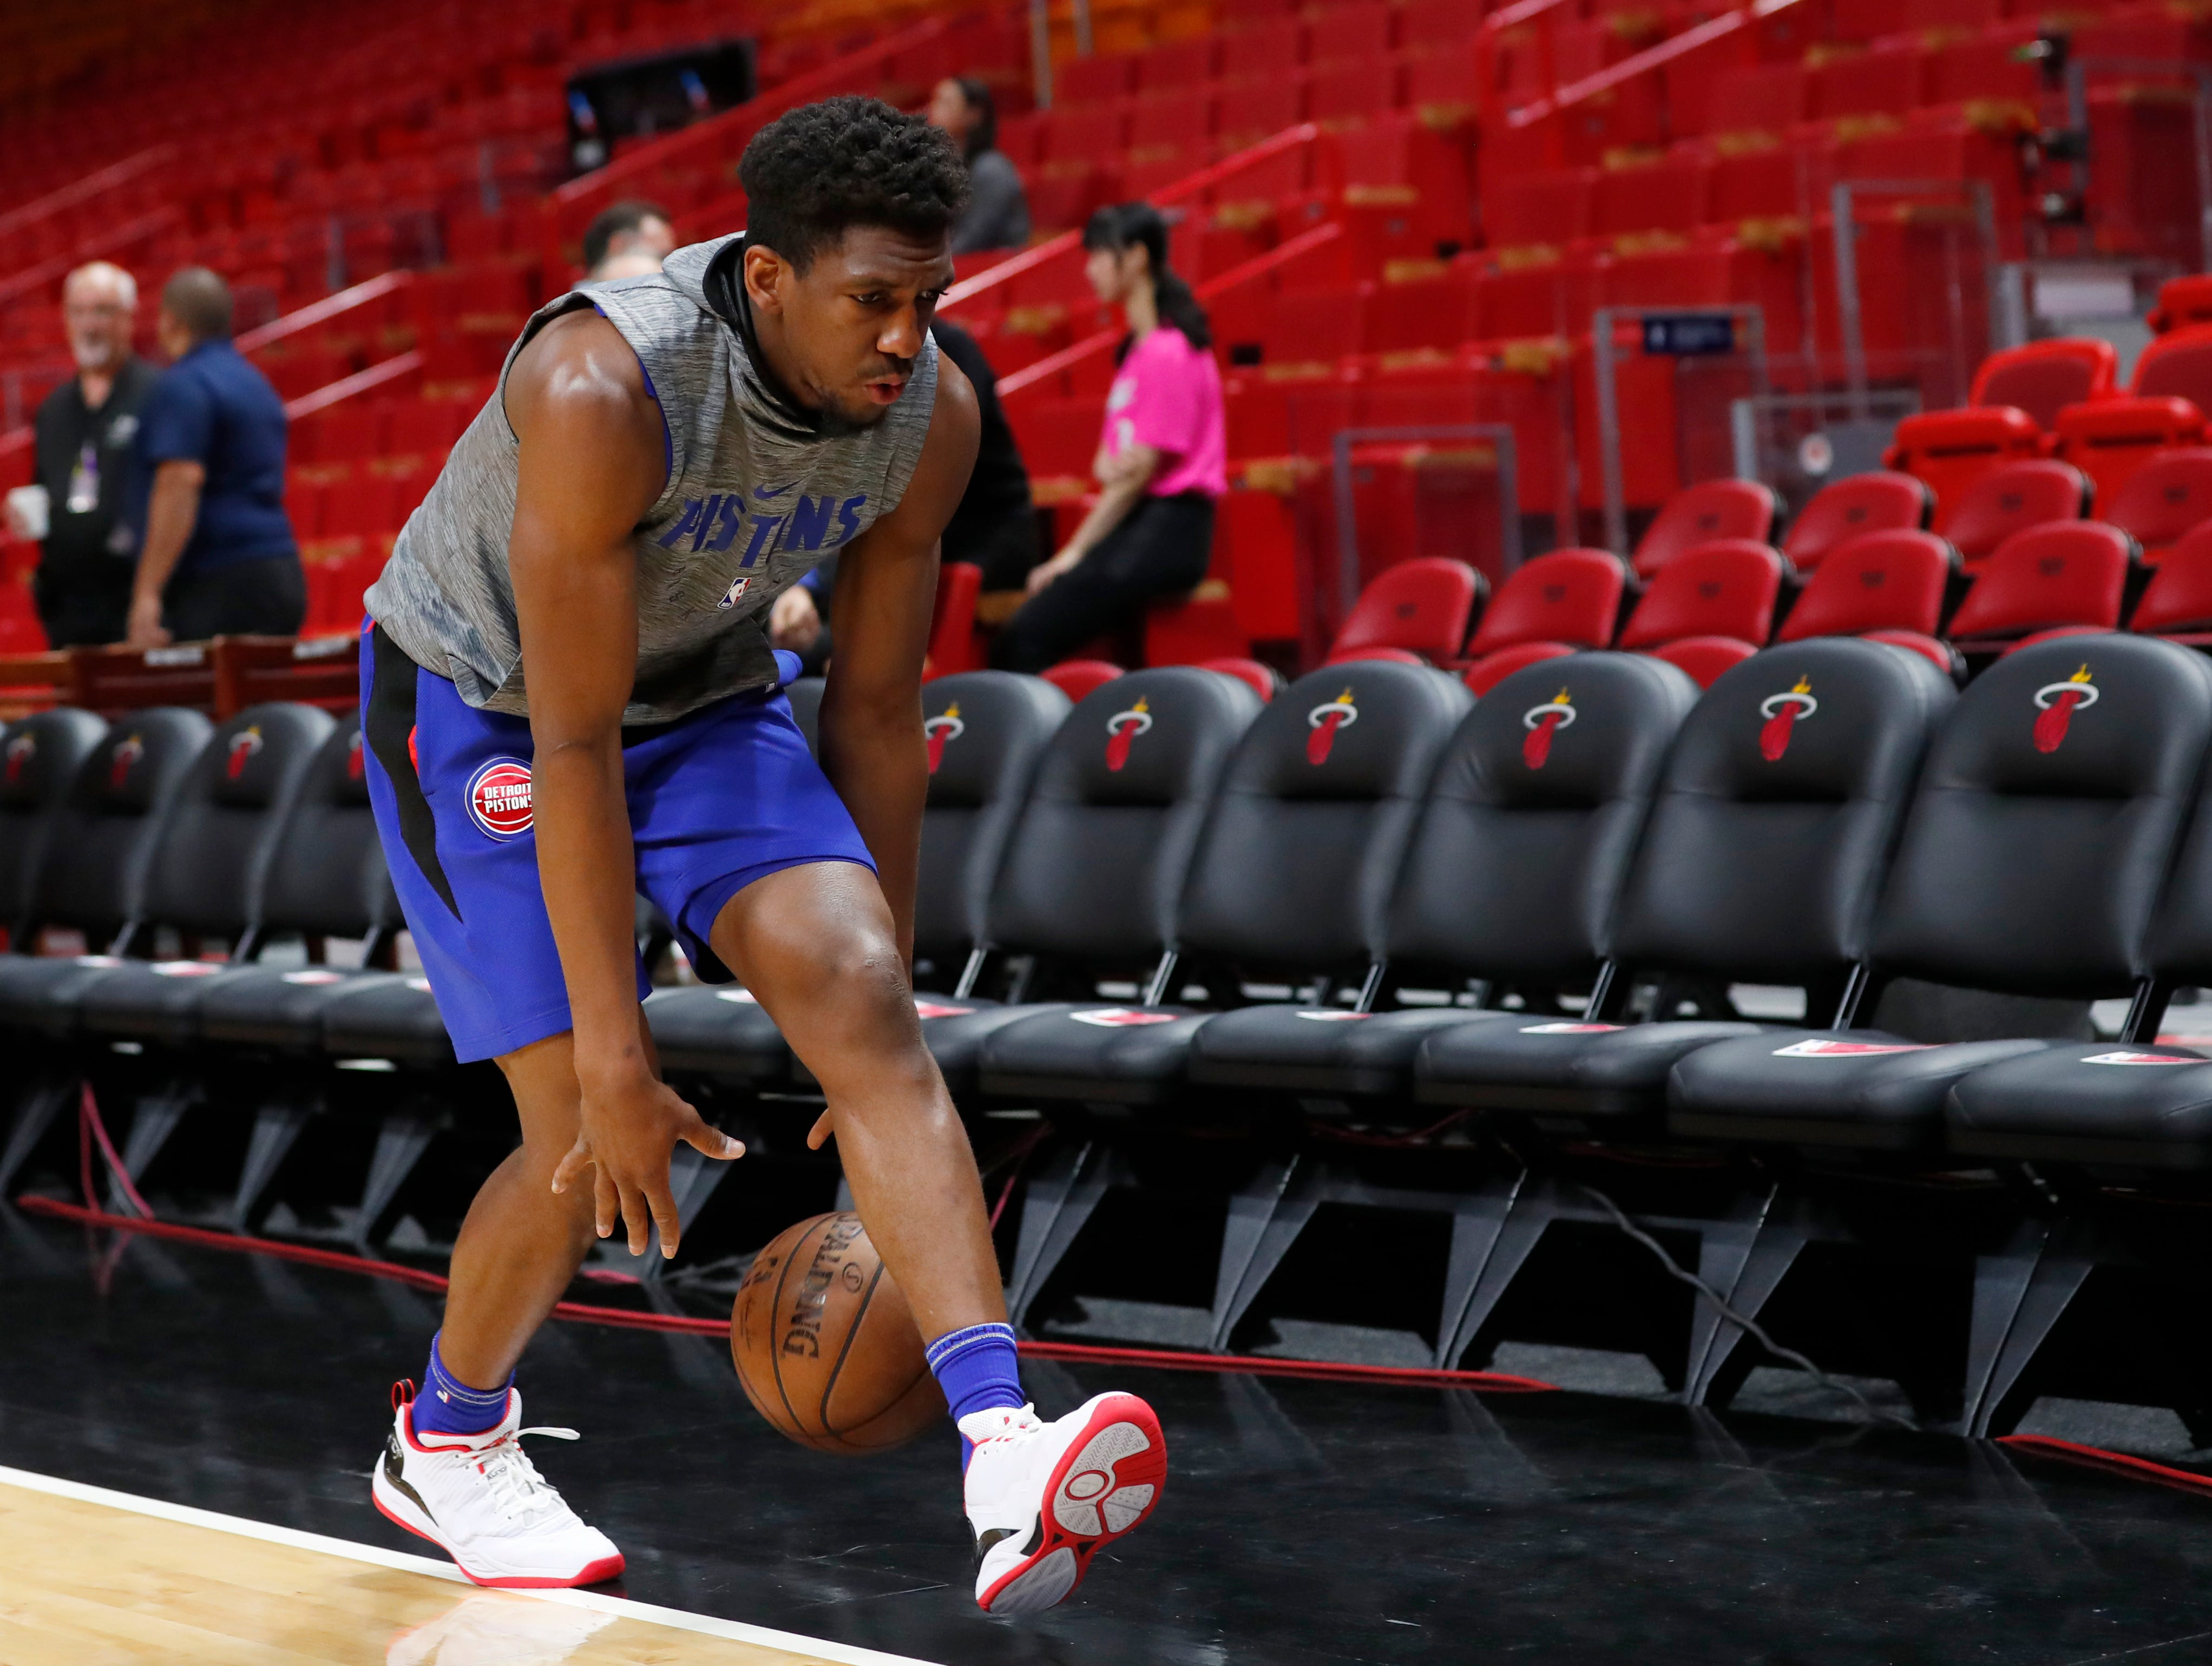 Detroit Pistons guard Langston Galloway warms up before the start of an NBA basketball game against the Miami Heat.